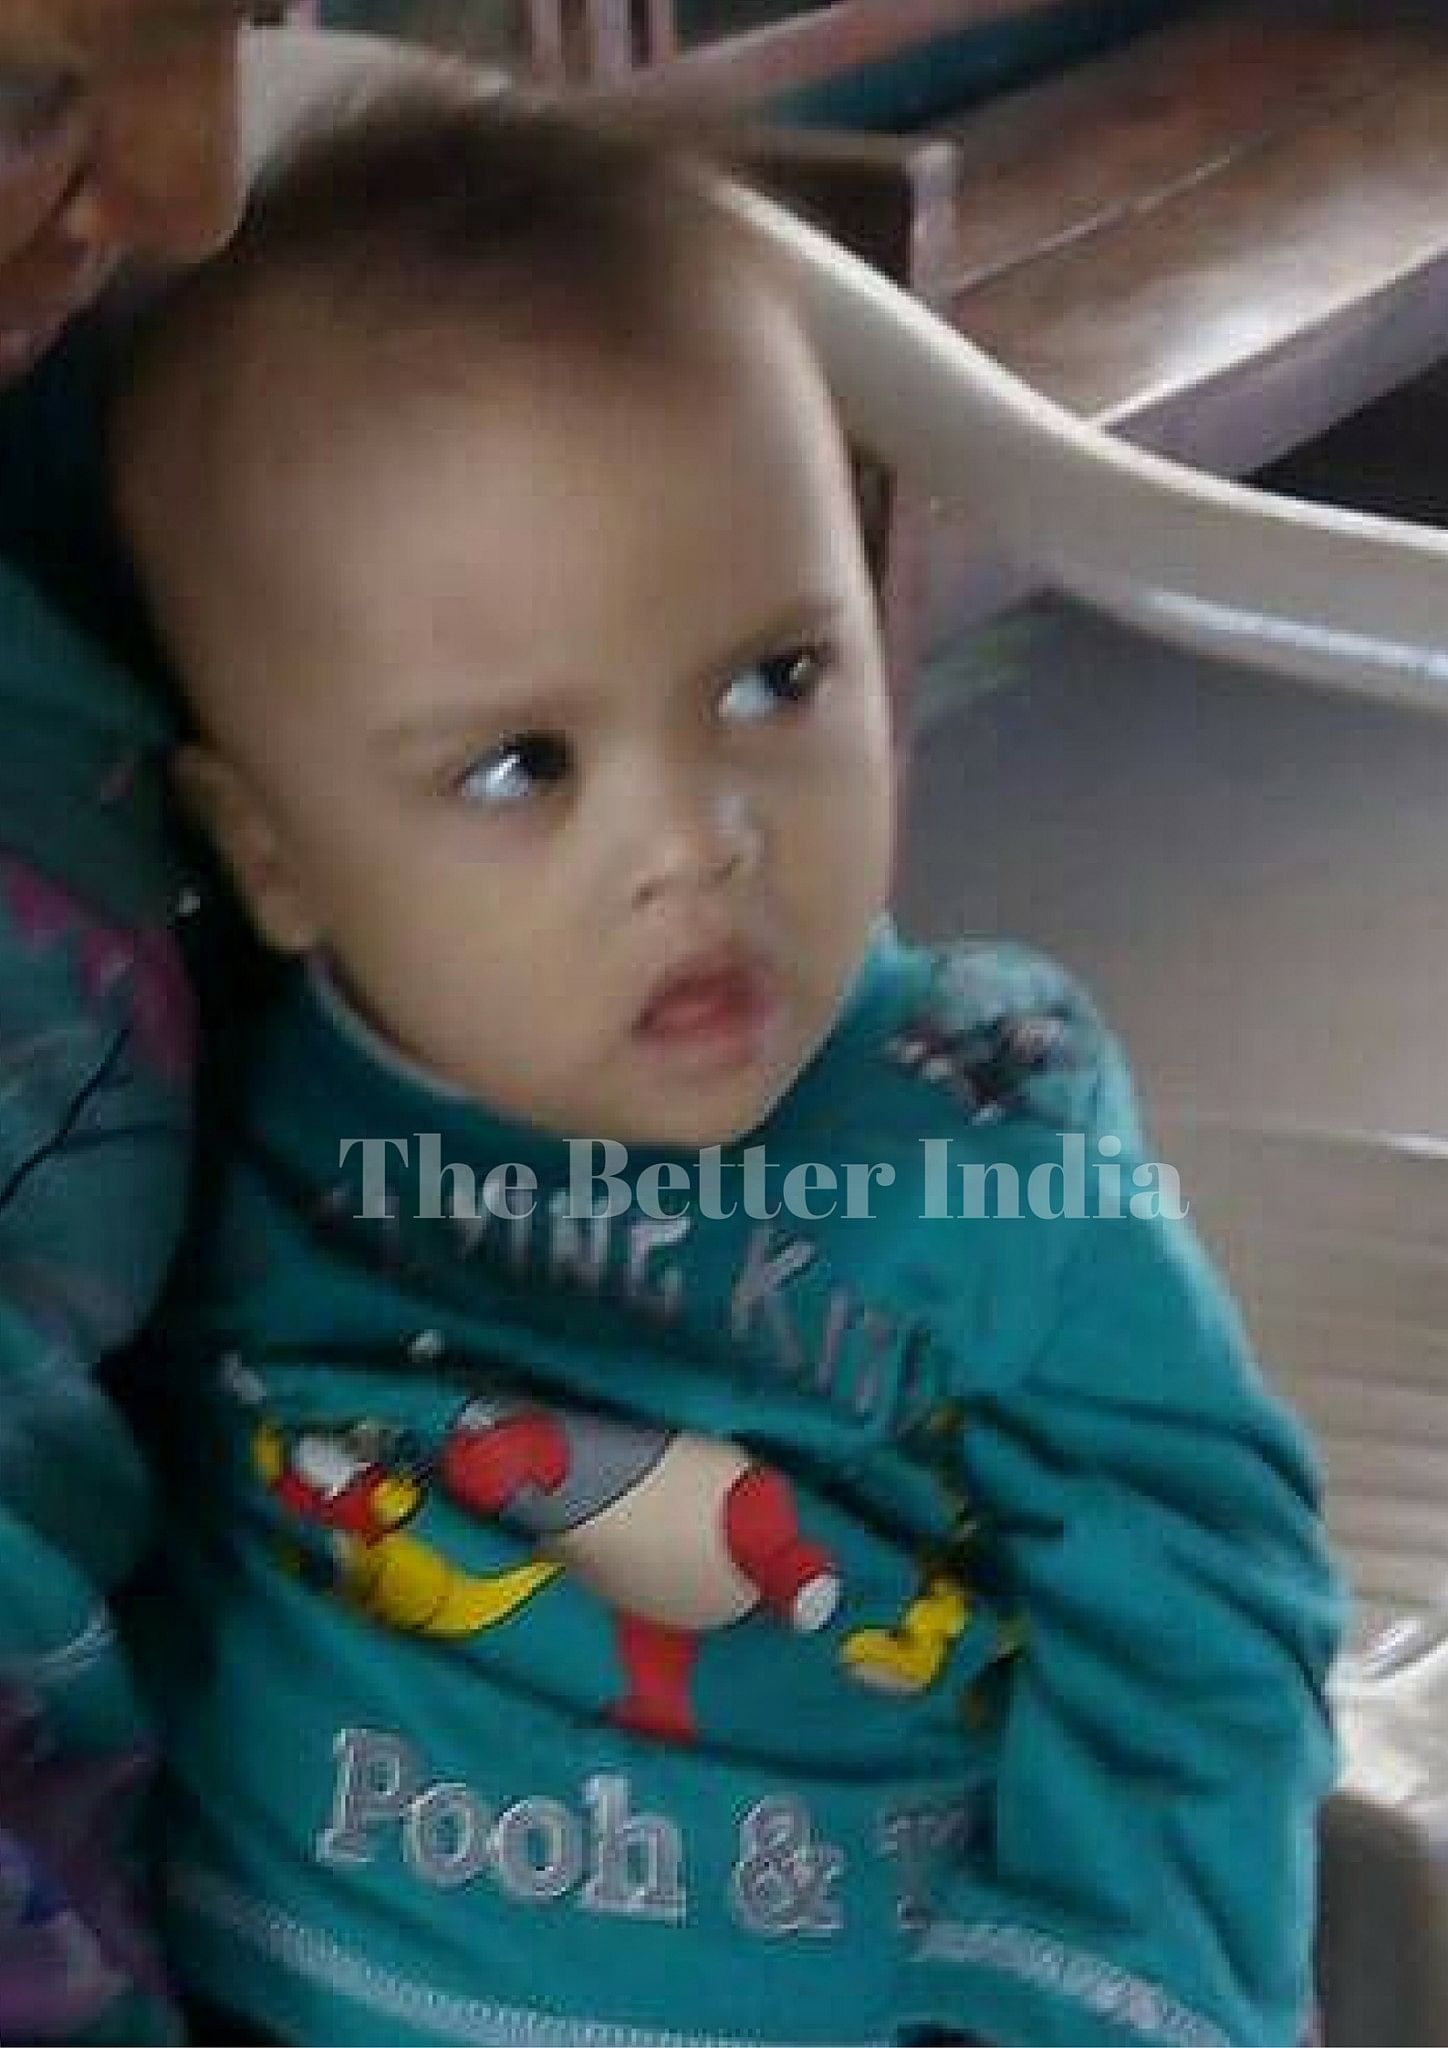 Binny was born in a rich family. But they abandoned him because of his special condition.